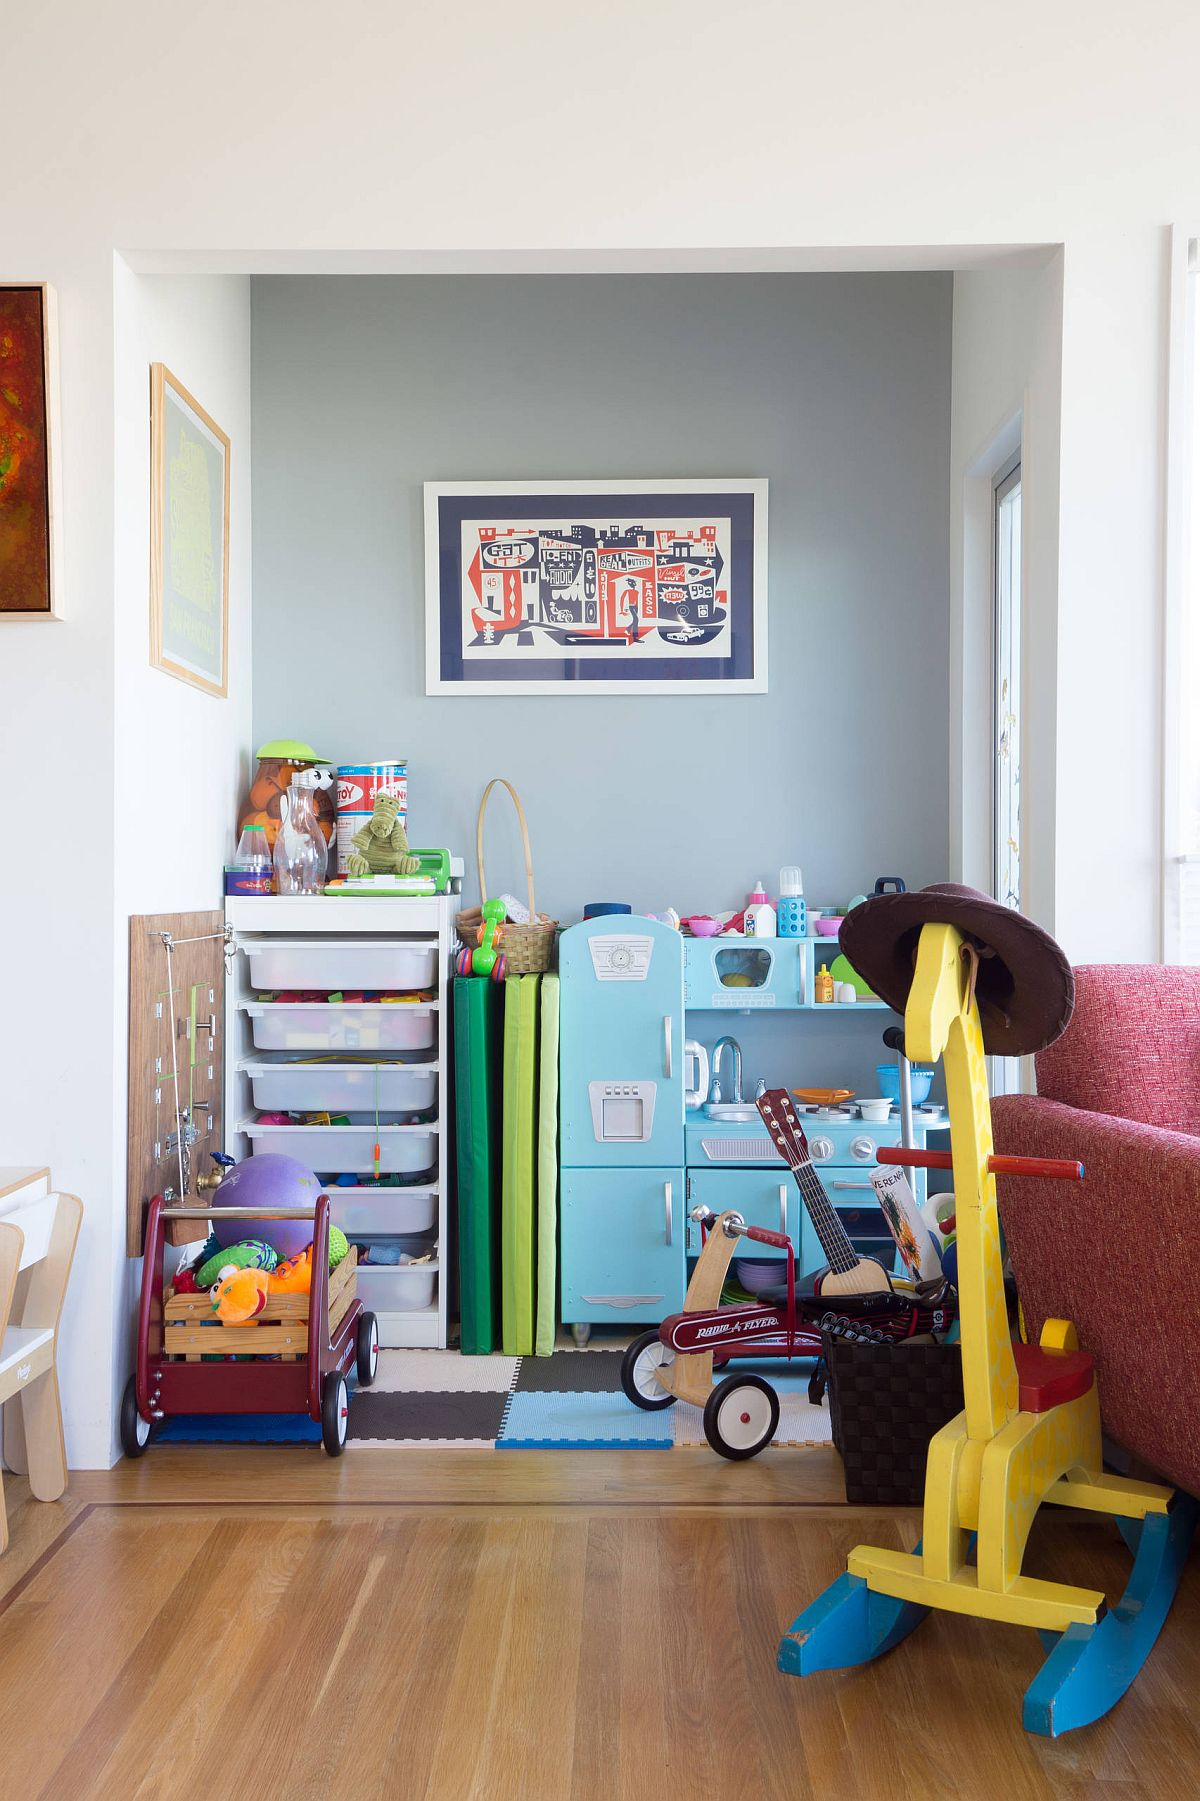 Turn-the-corner-in-the-kids-bedroom-into-a-small-playarea-this-Spring-16461